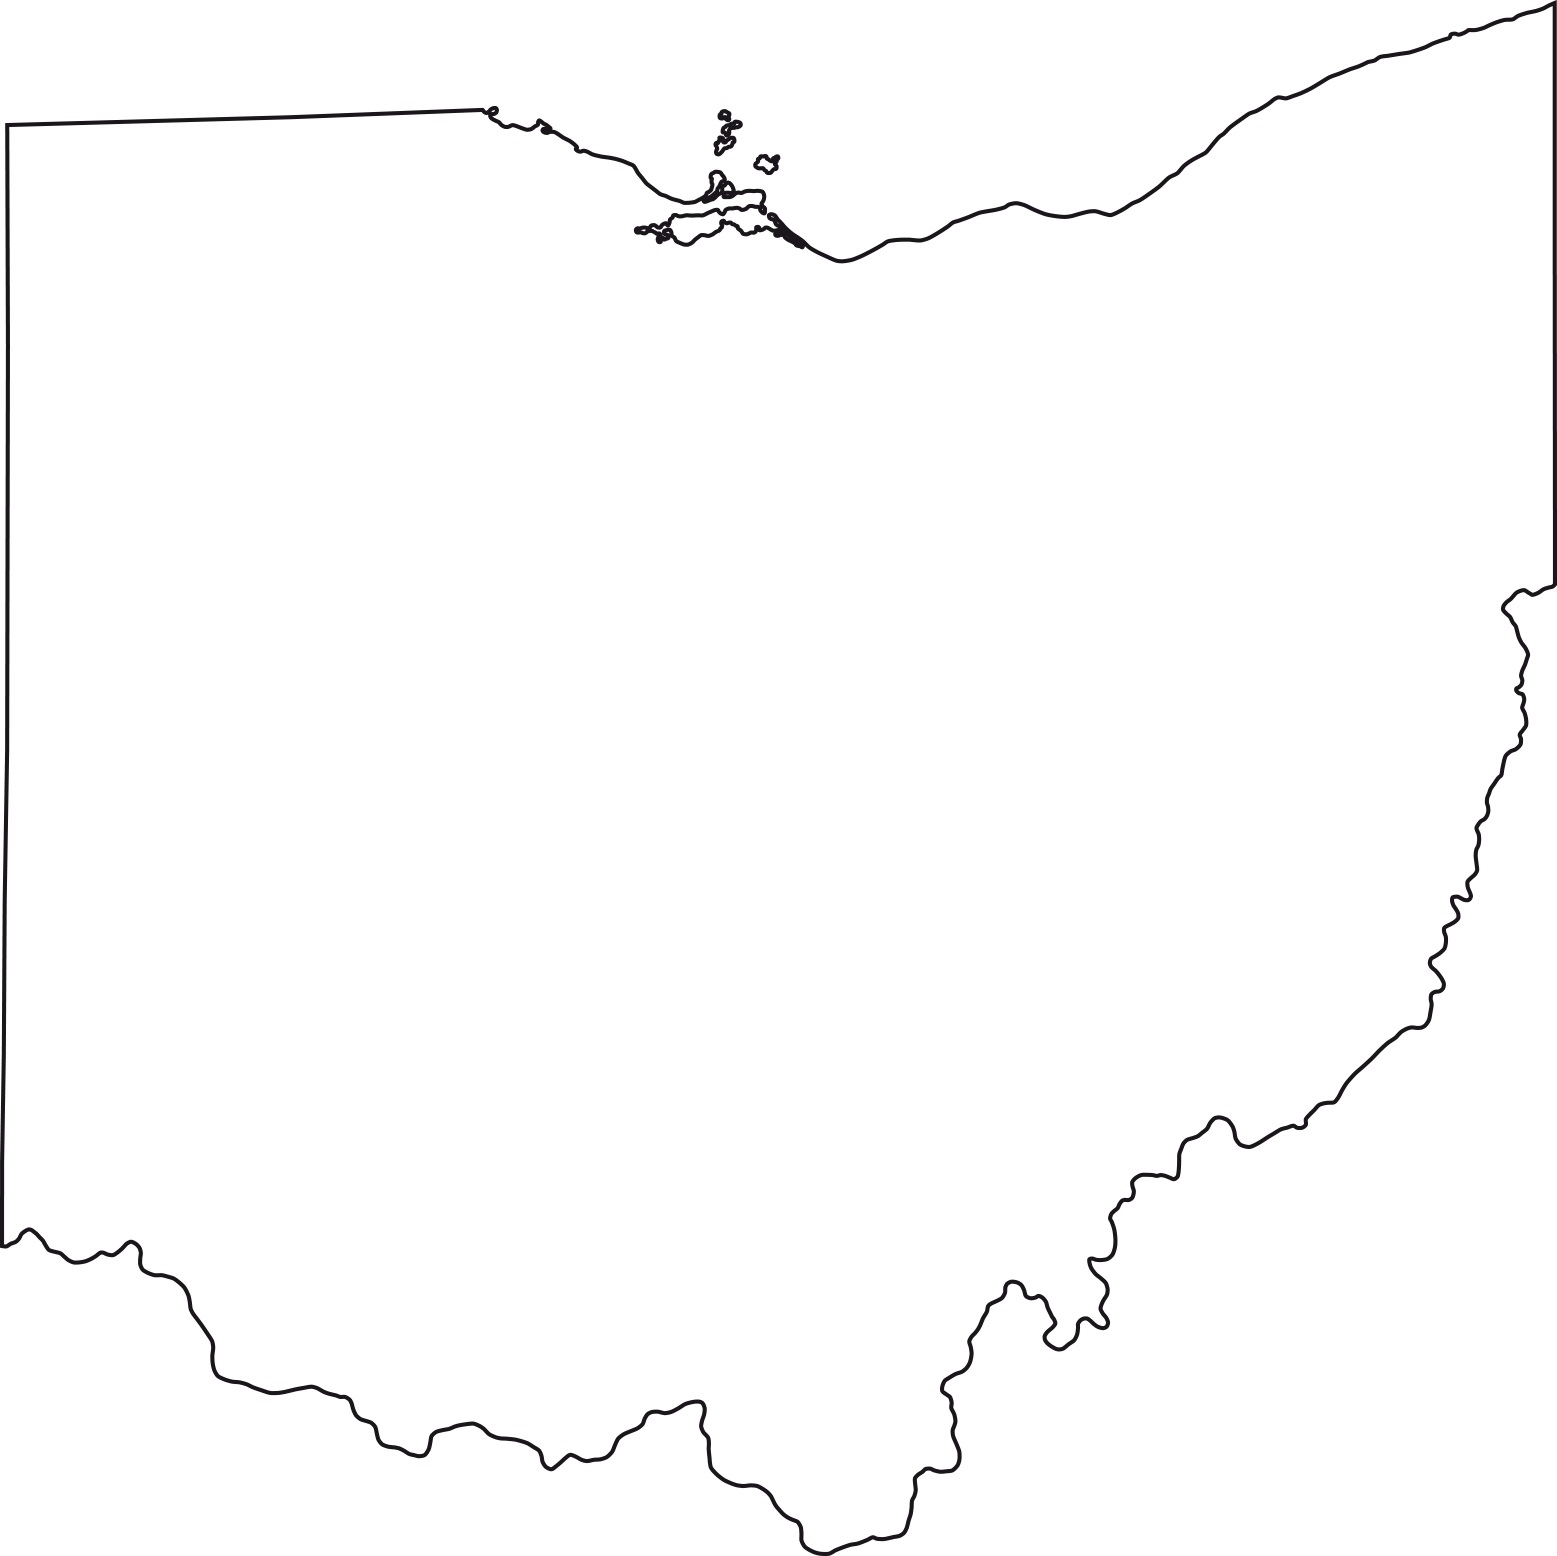 Ohio blank outline Map | Large Printable High Resolution and Standard Map